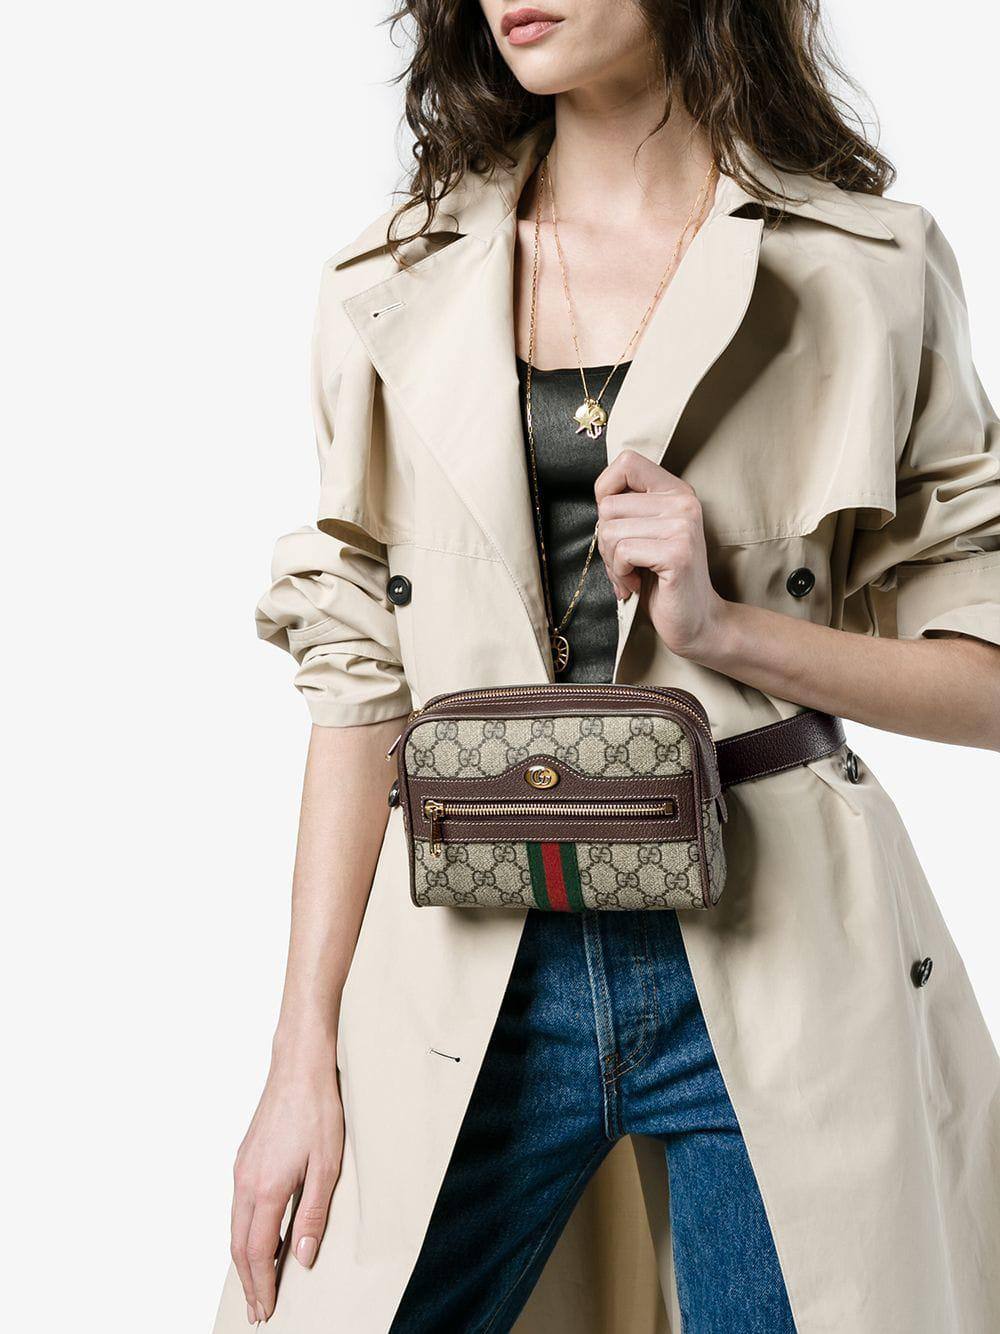 38988fd361f Lyst - Gucci Brown Ophidia GG Supreme Small Belt Bag in Brown - Save 15%